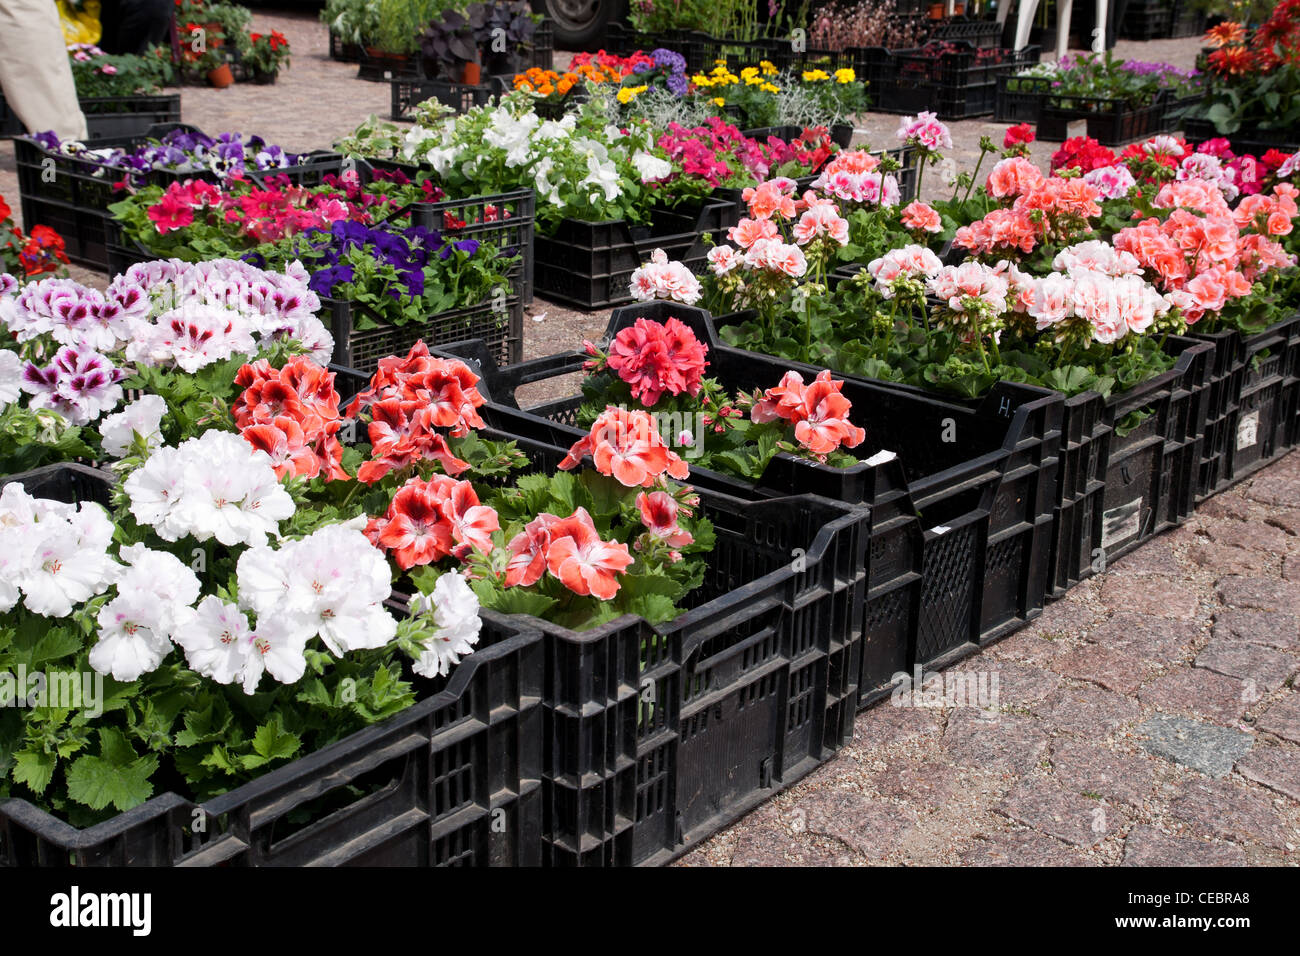 Spring flowers in boxes at an outdoor flower market - Stock Image